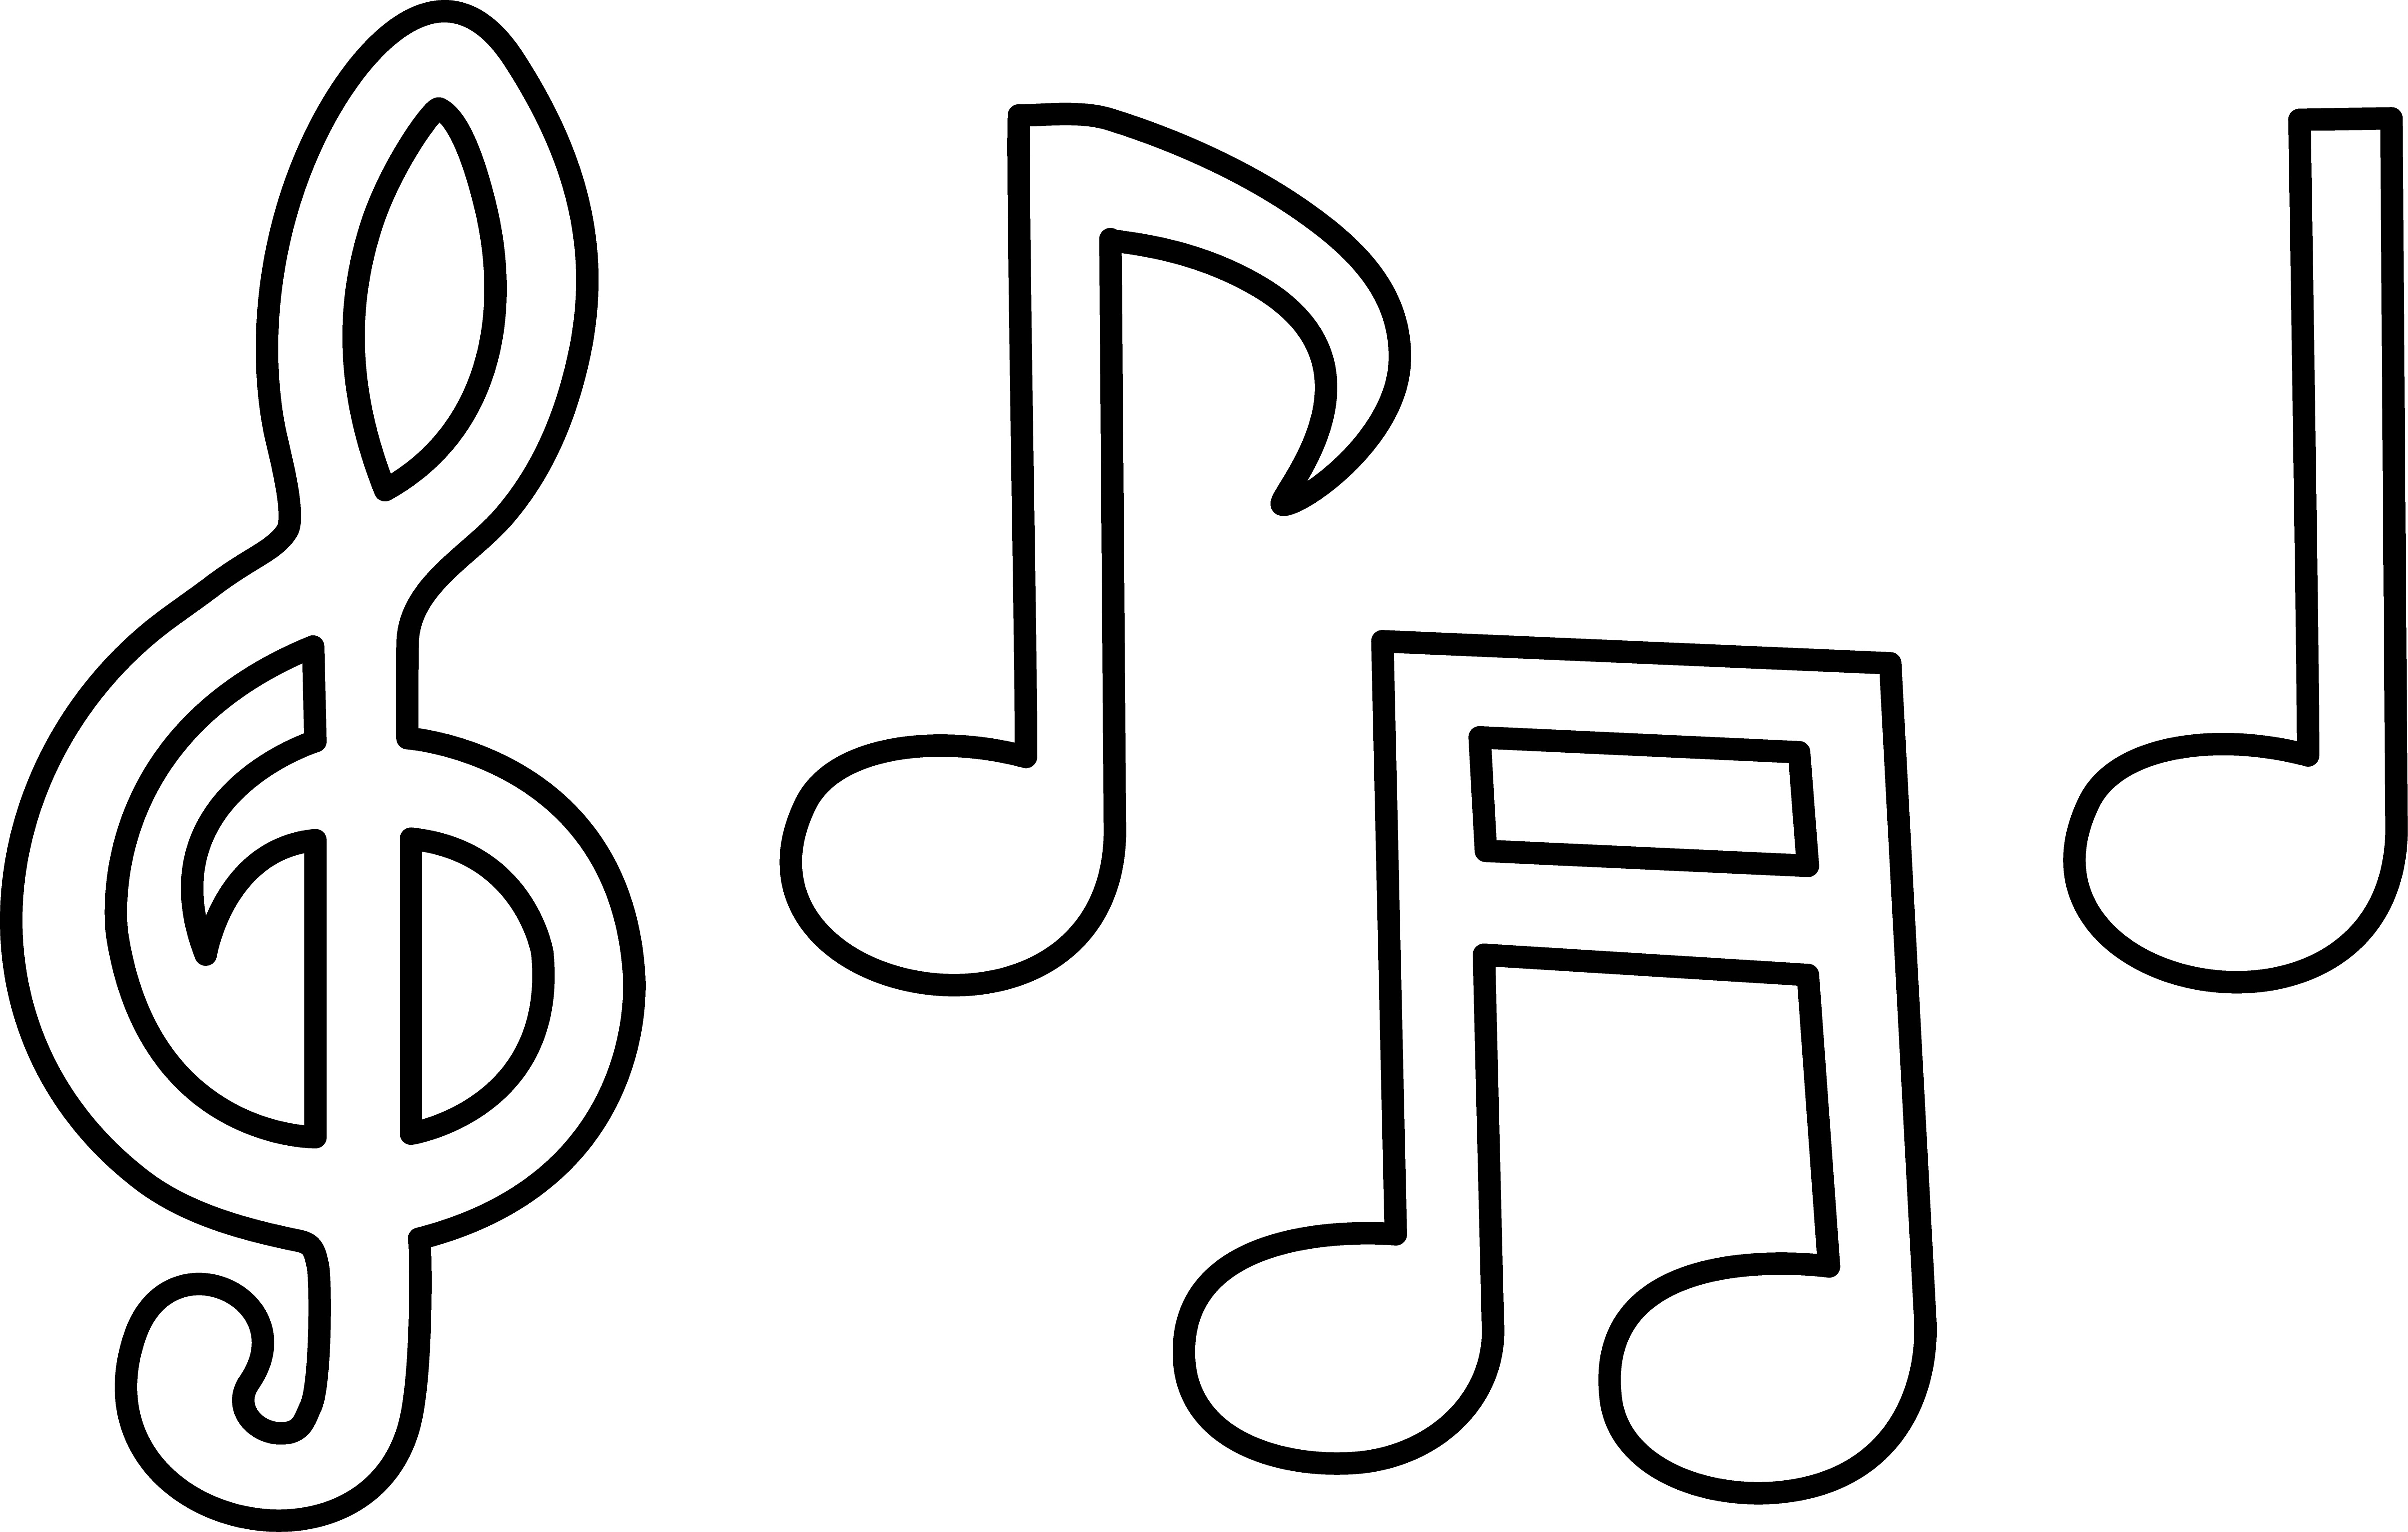 Drawn music notes stencil More Printable Music Music of